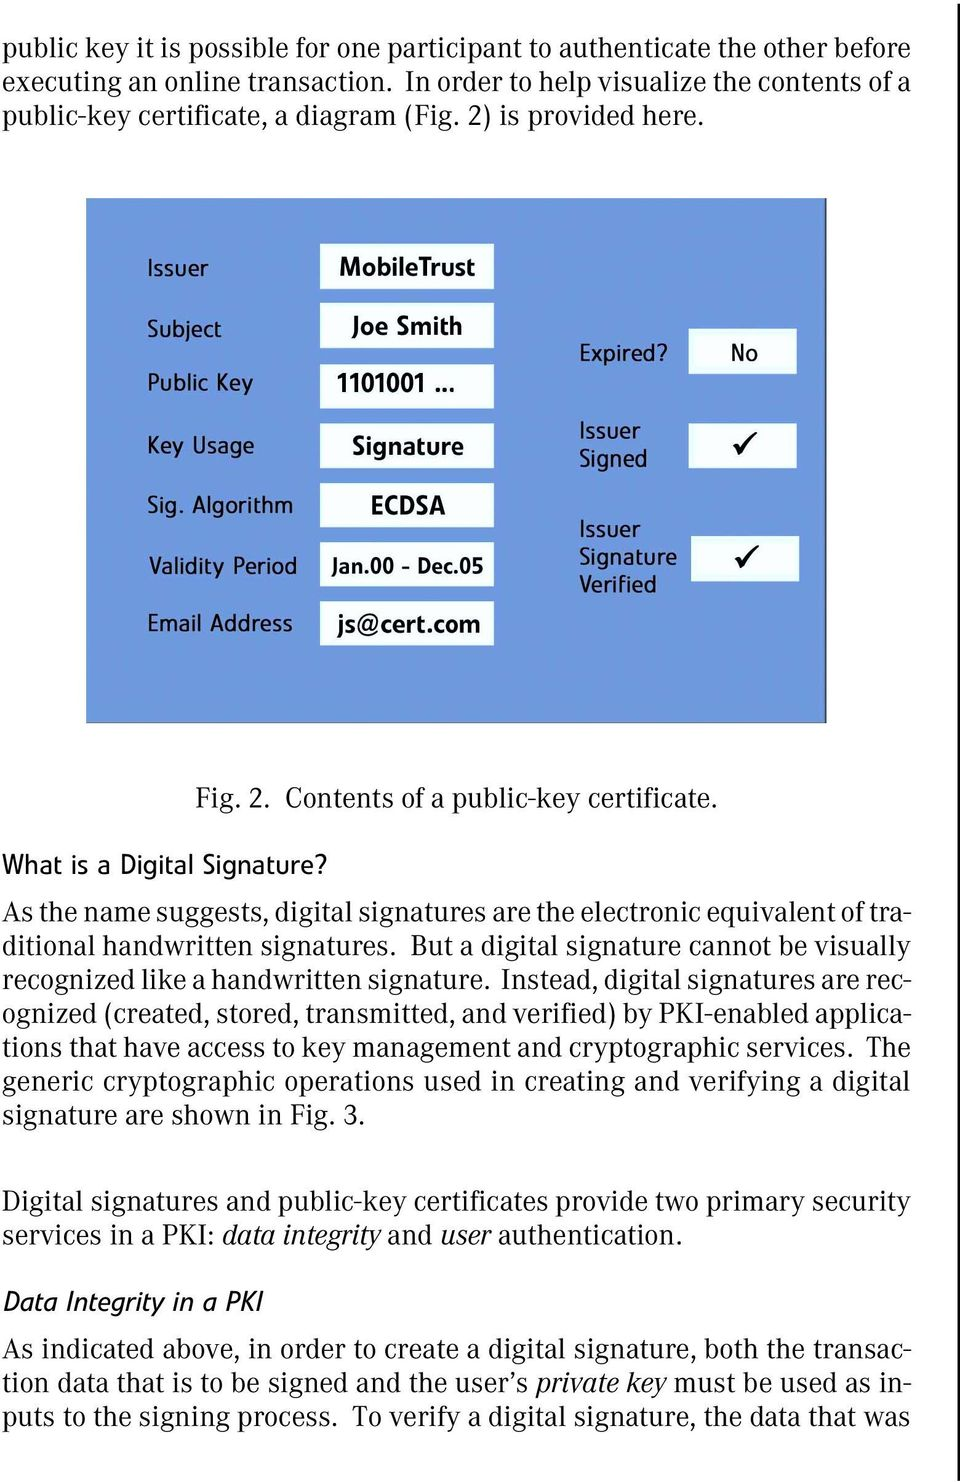 As the name suggests, digital signatures are the electronic equivalent of traditional handwritten signatures. But a digital signature cannot be visually recognized like a handwritten signature.